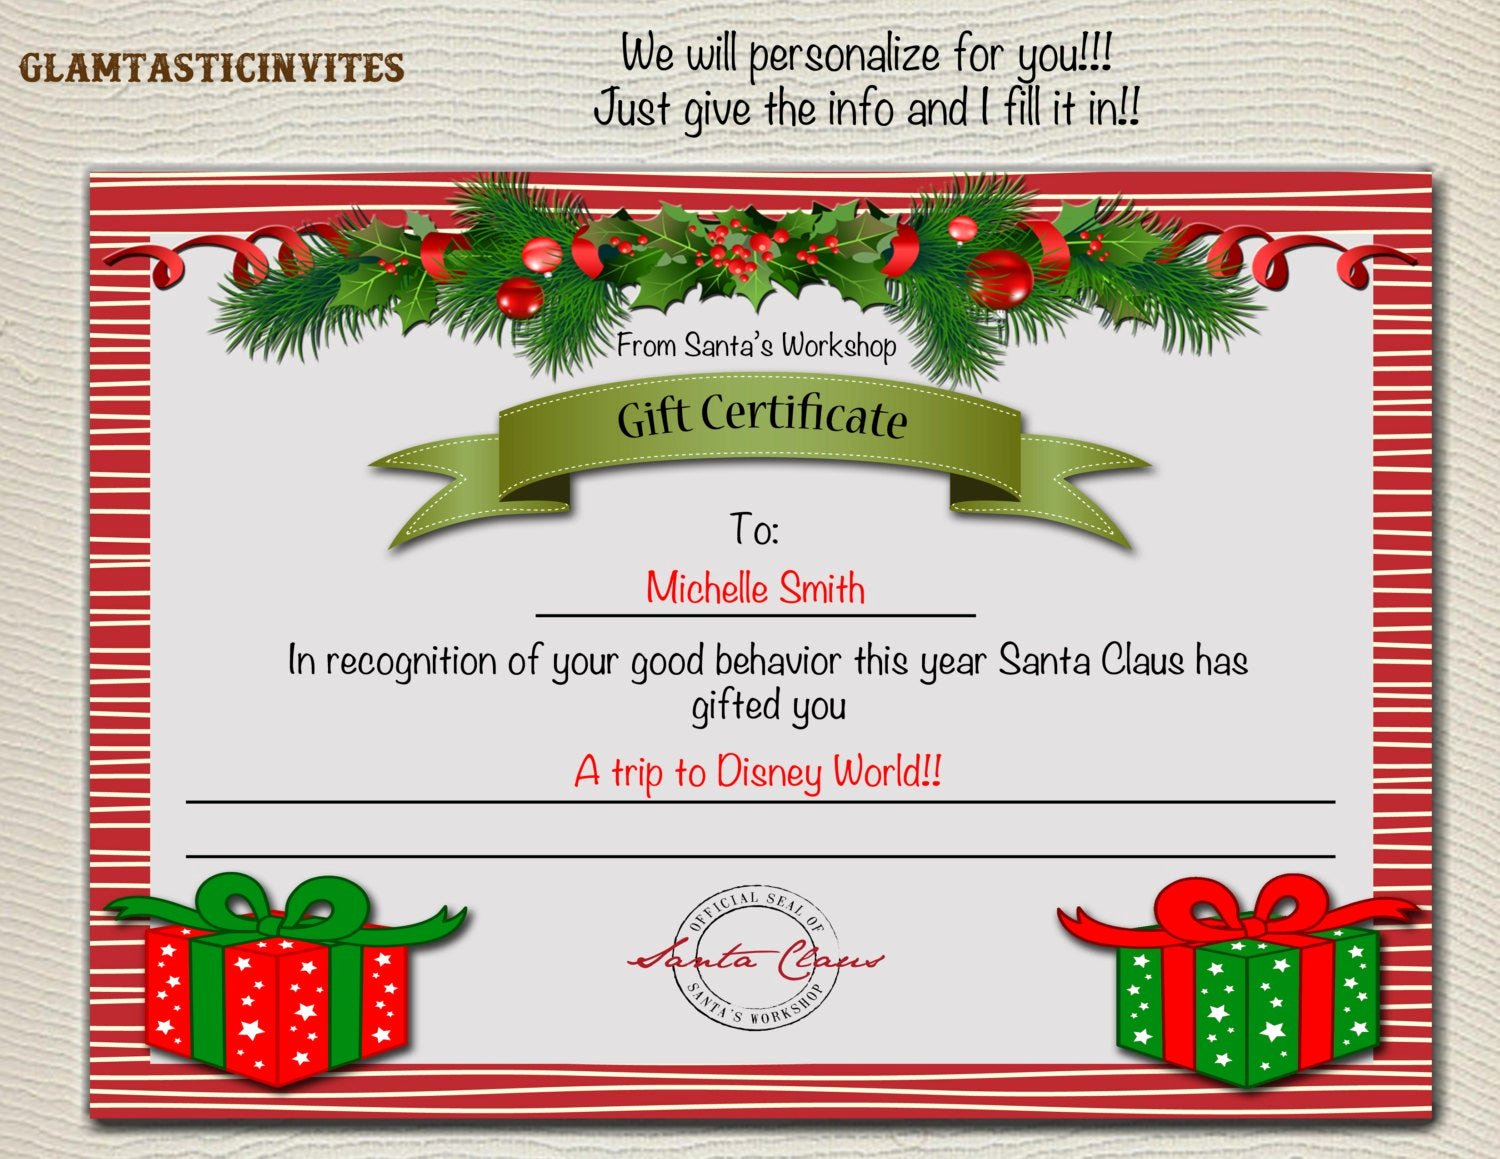 Holiday Gift Certificate Template Awesome Christmas Gift Certificate Christmas Trip Gift Certificate